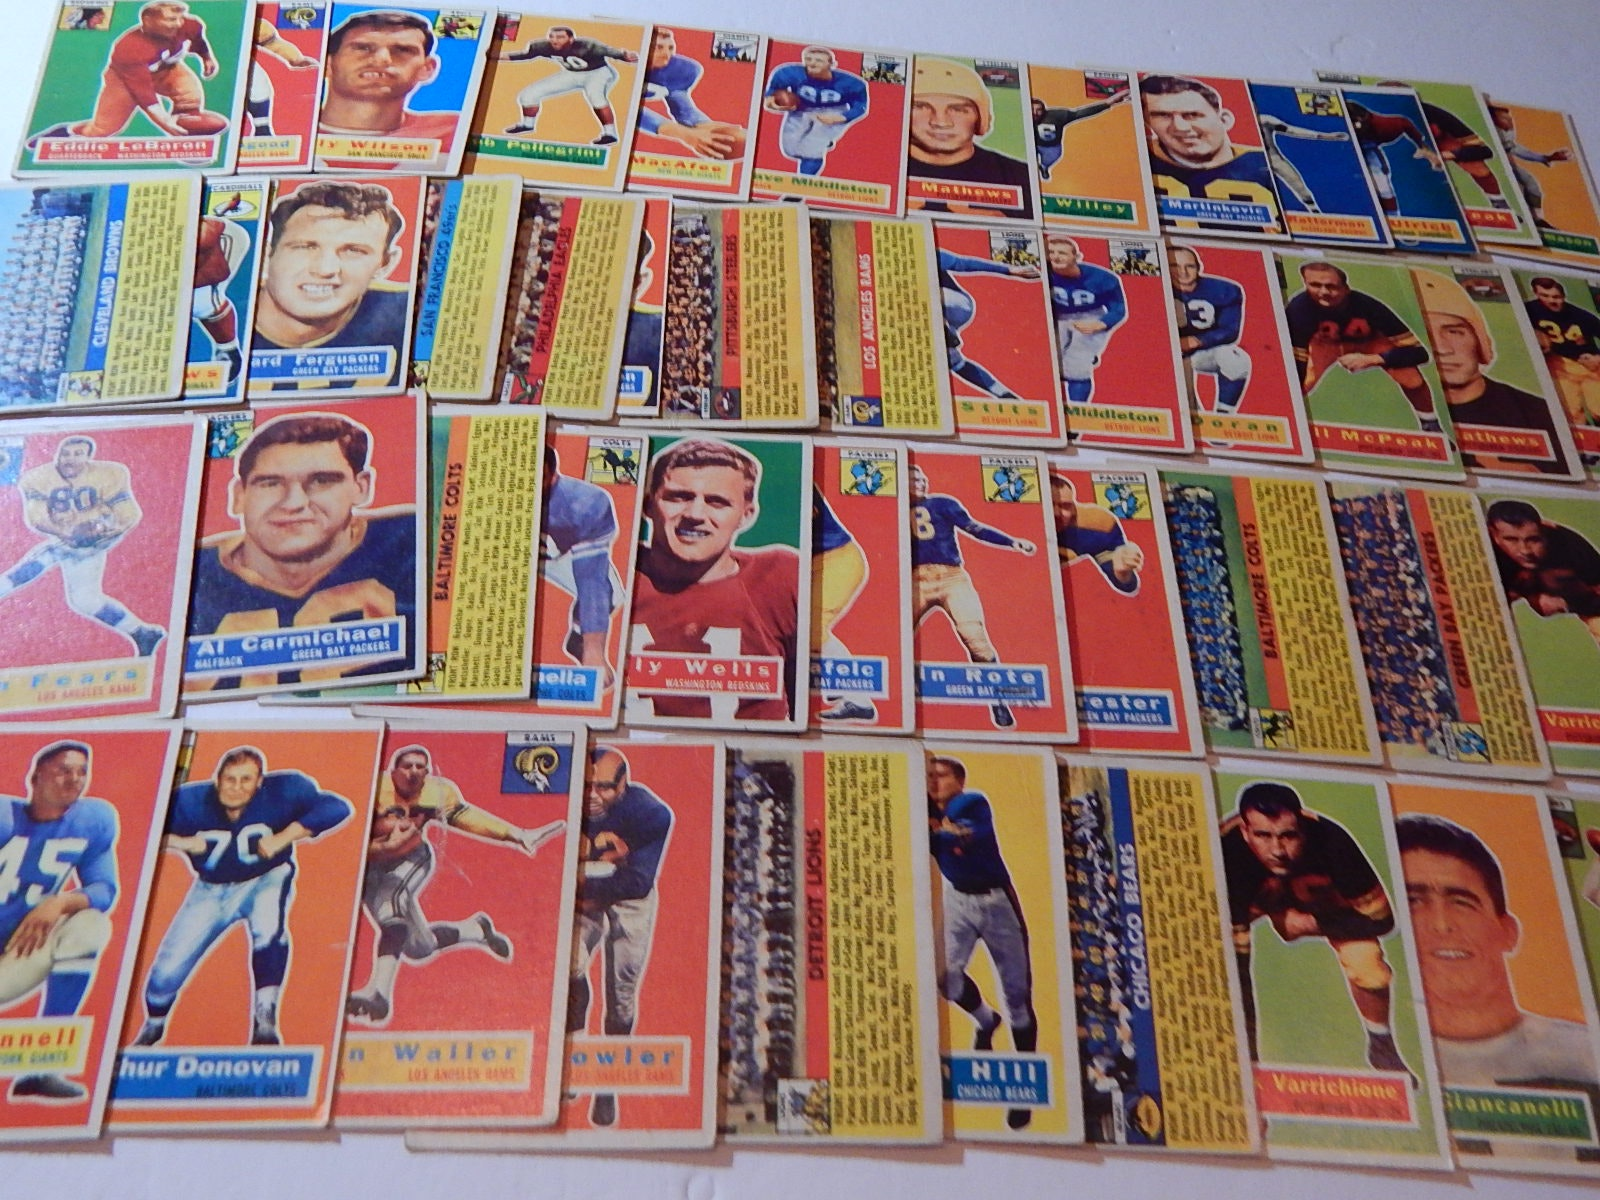 1956 Topps Football Card Collection with HOF, Stars - 48 Card Count